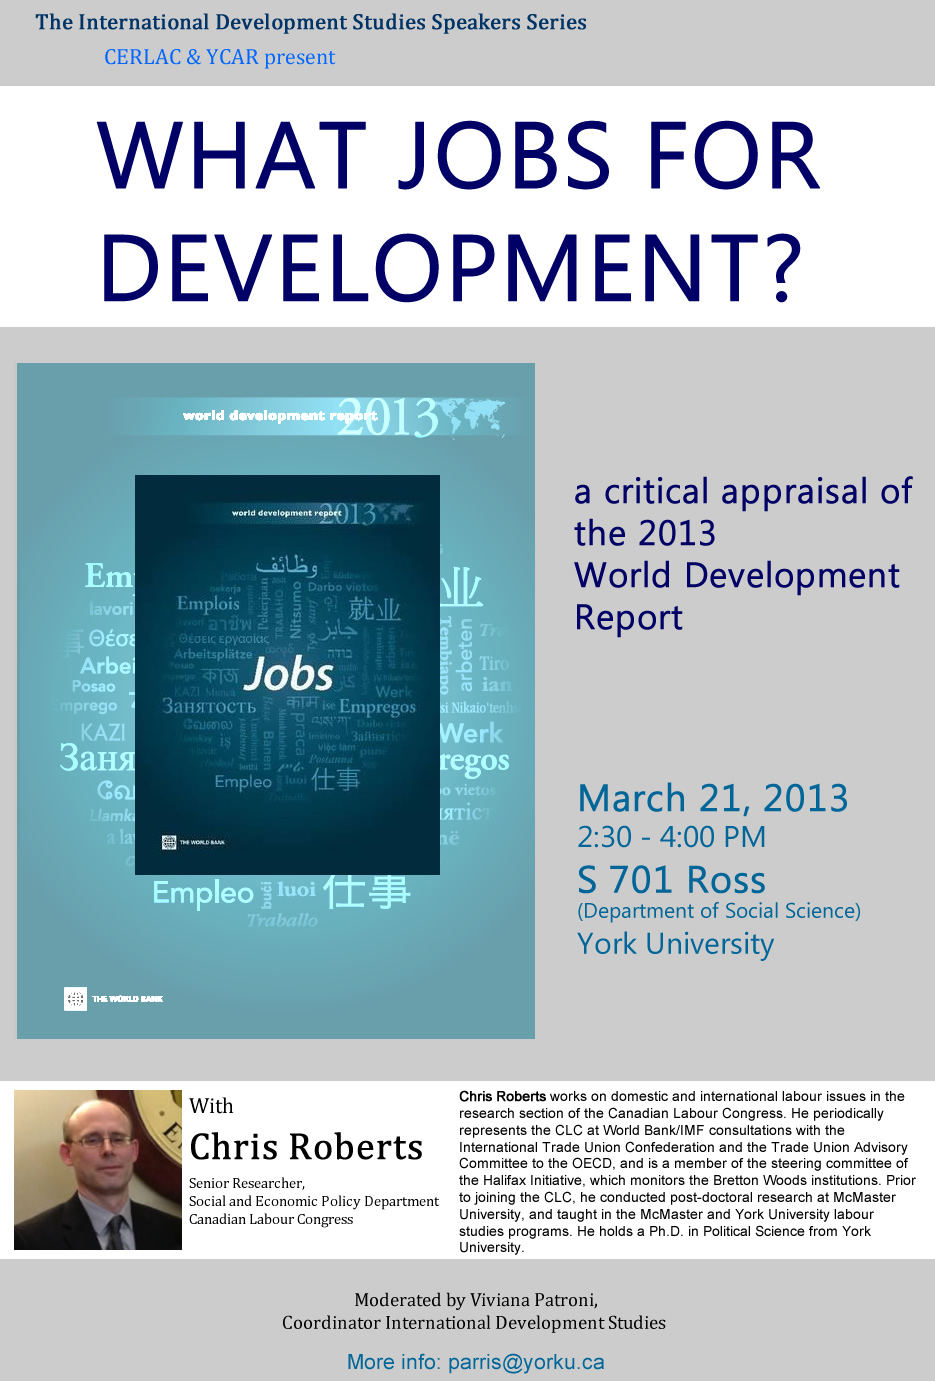 What jobs for development